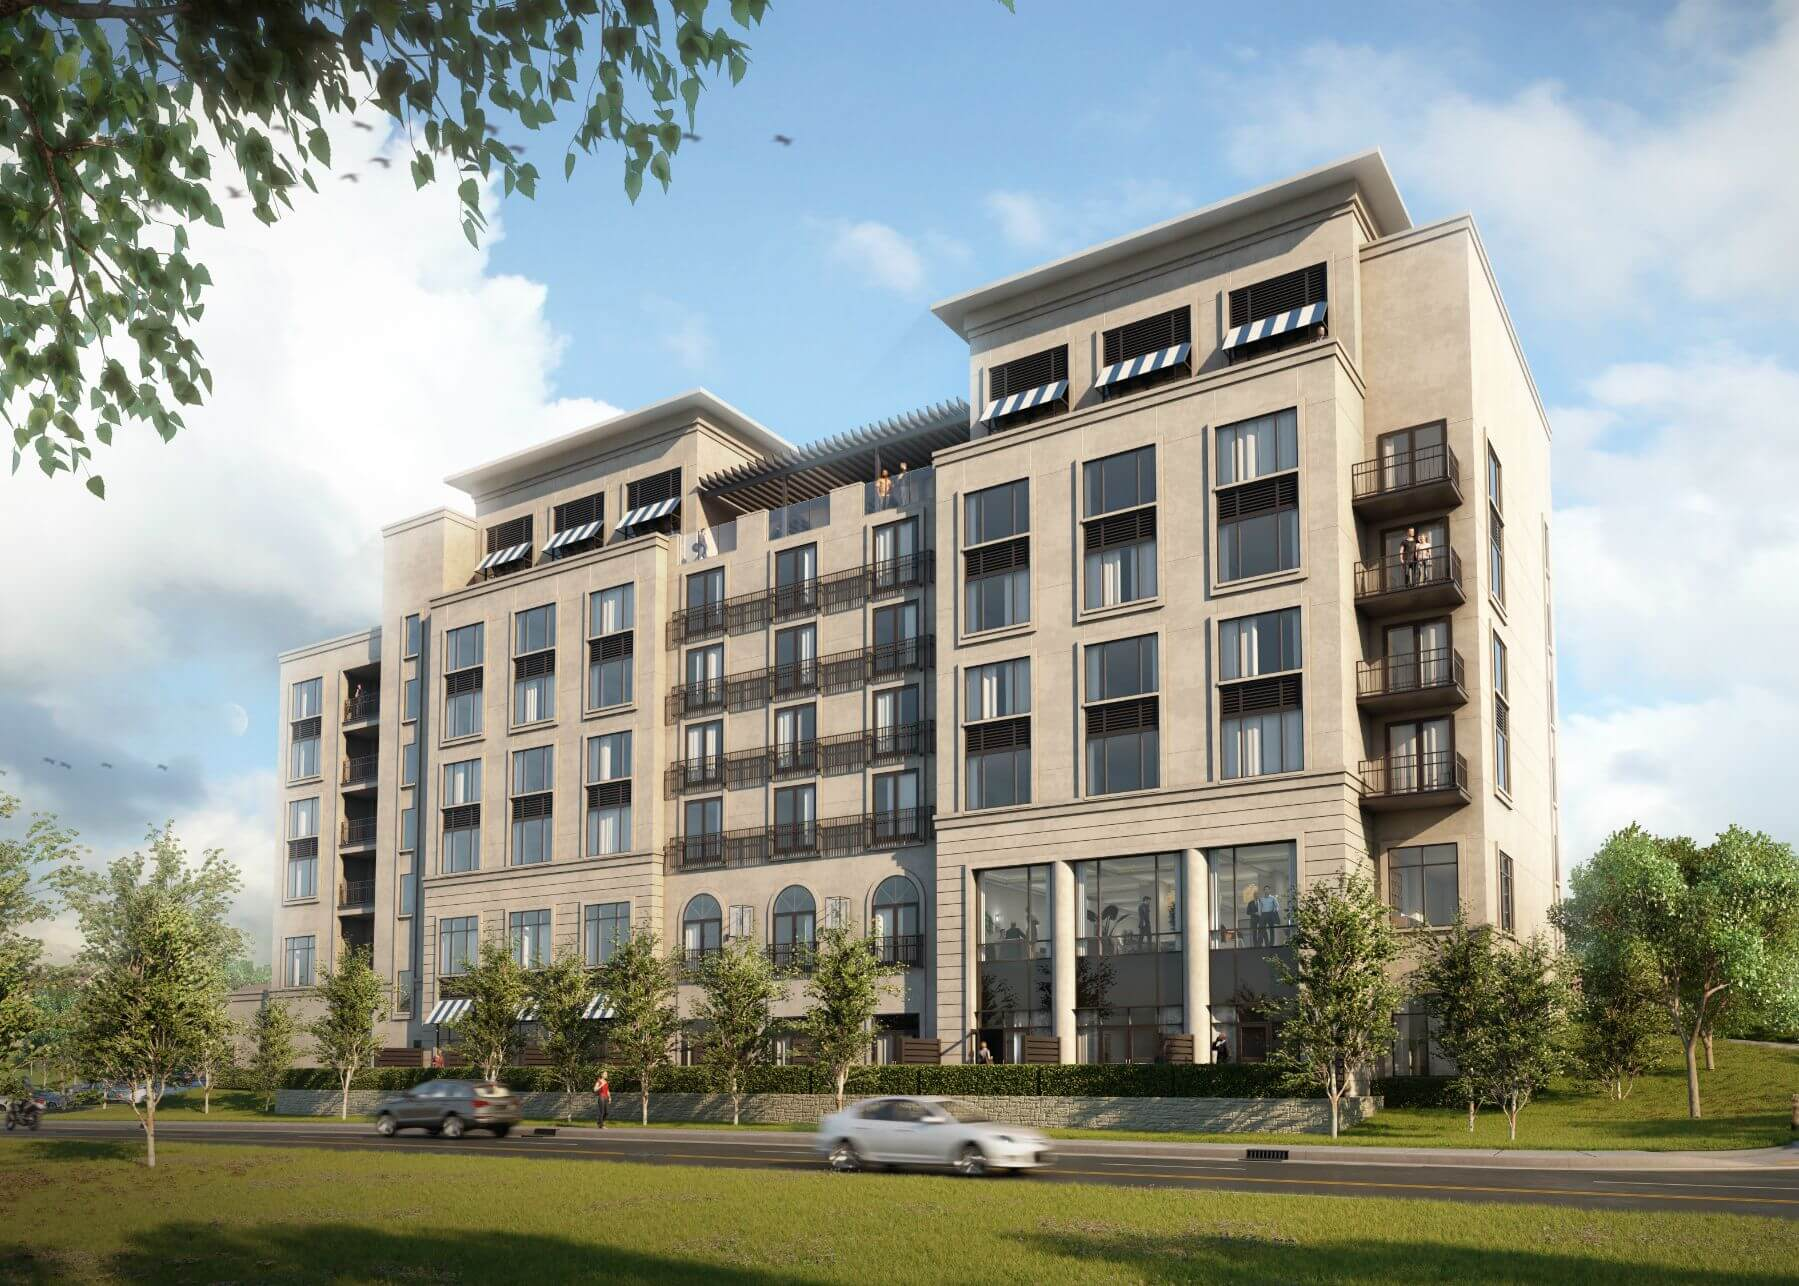 Rendering of the future hotel The Maple in Tulsa, Oklahoma